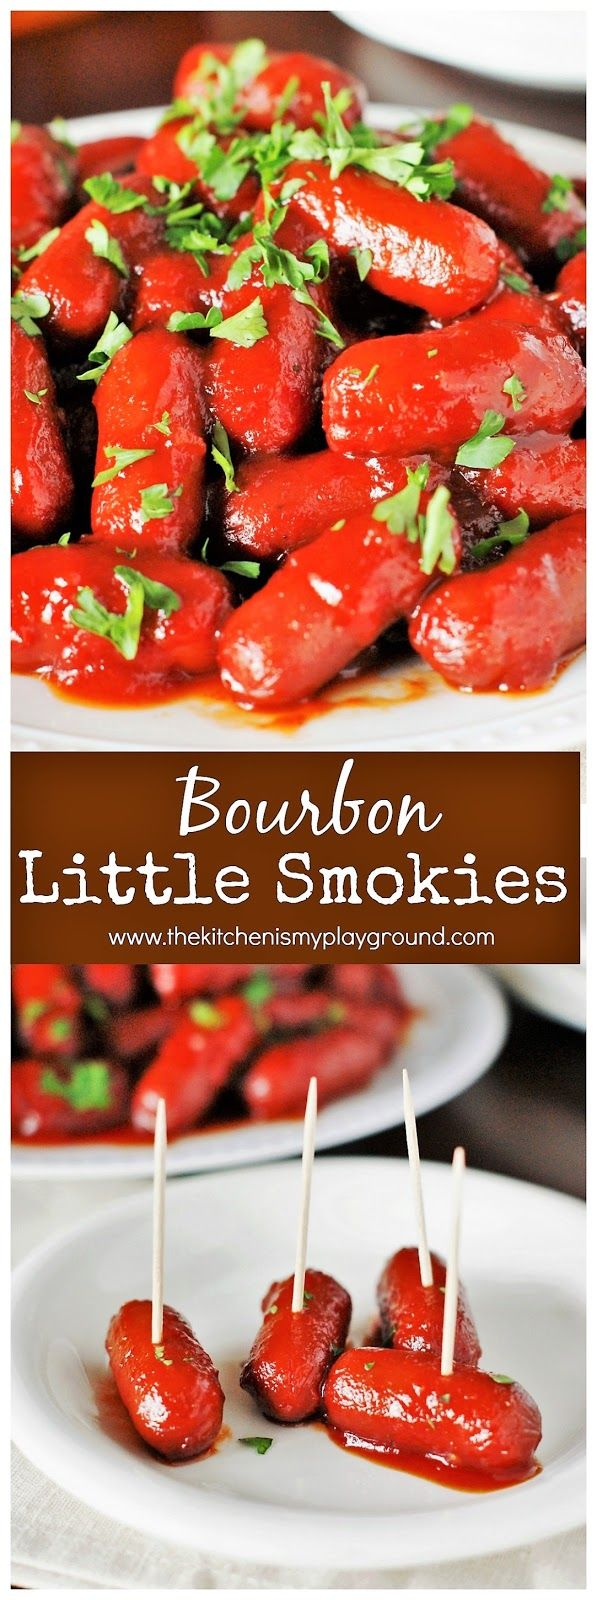 Lit'l Smokies cocktail links are surrounded by a delicious bourbon sauce in this perfect-for-a-party dish.